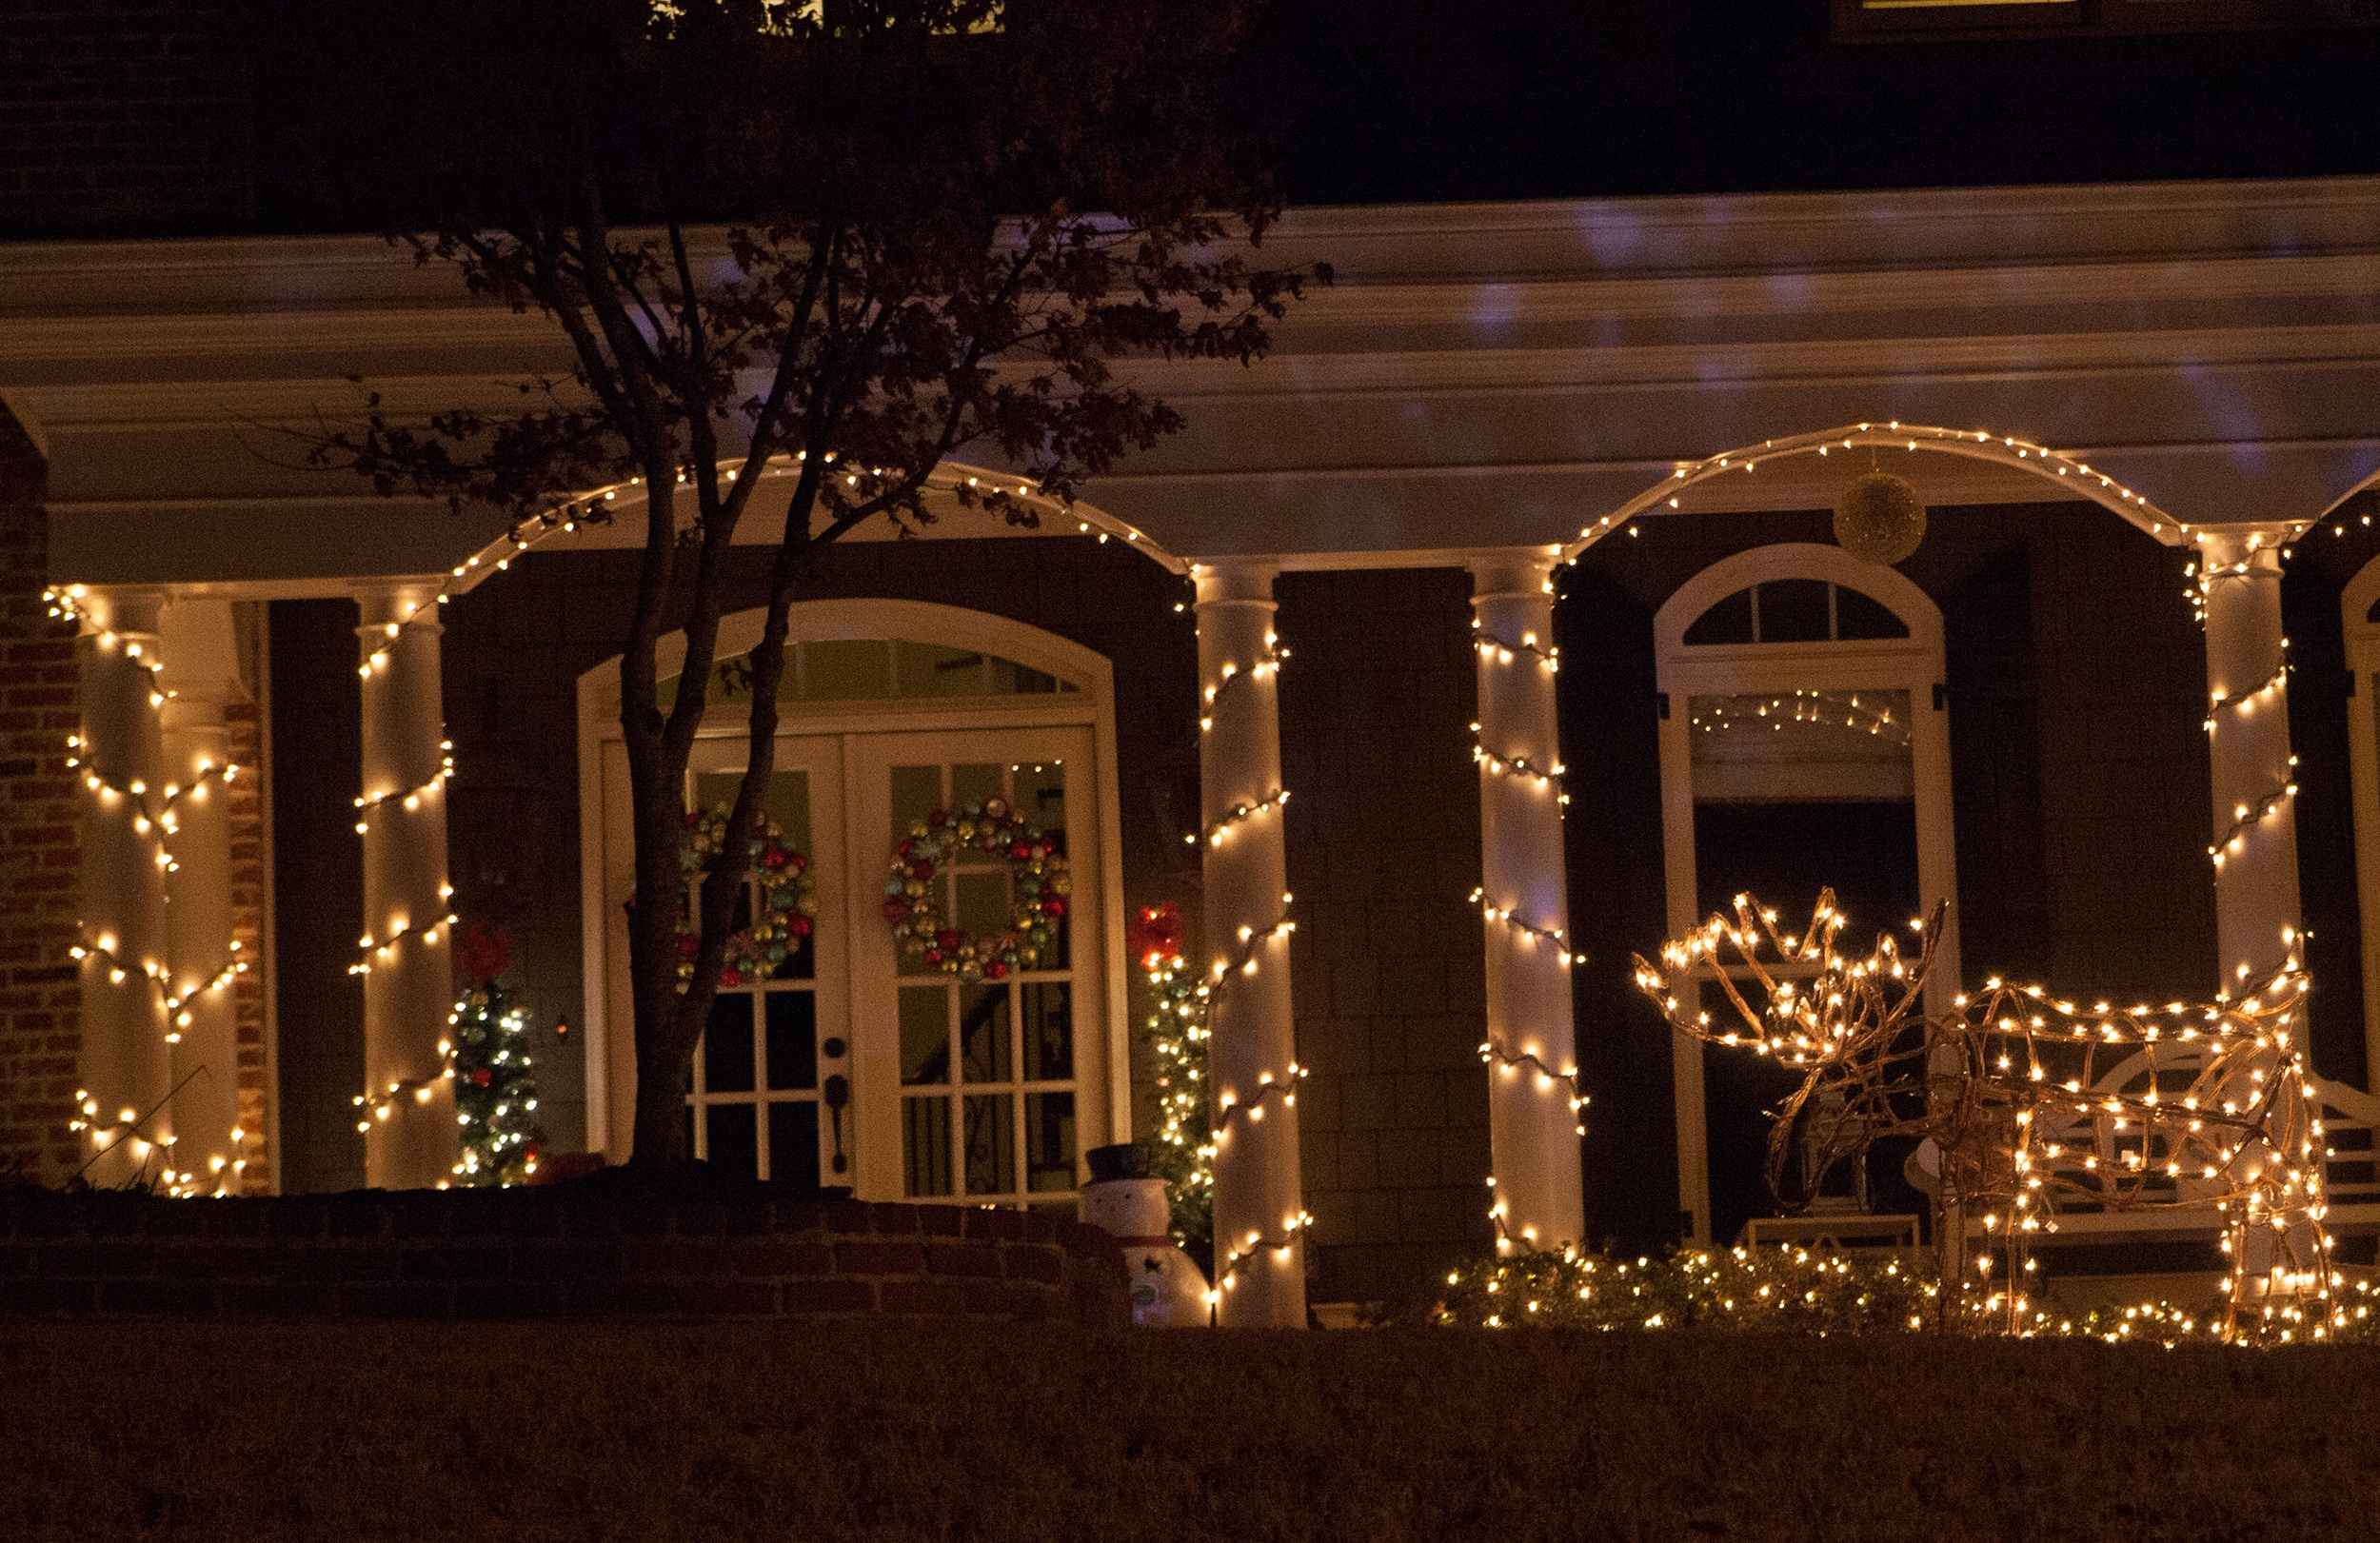 Porch columns wrapped with white string lights